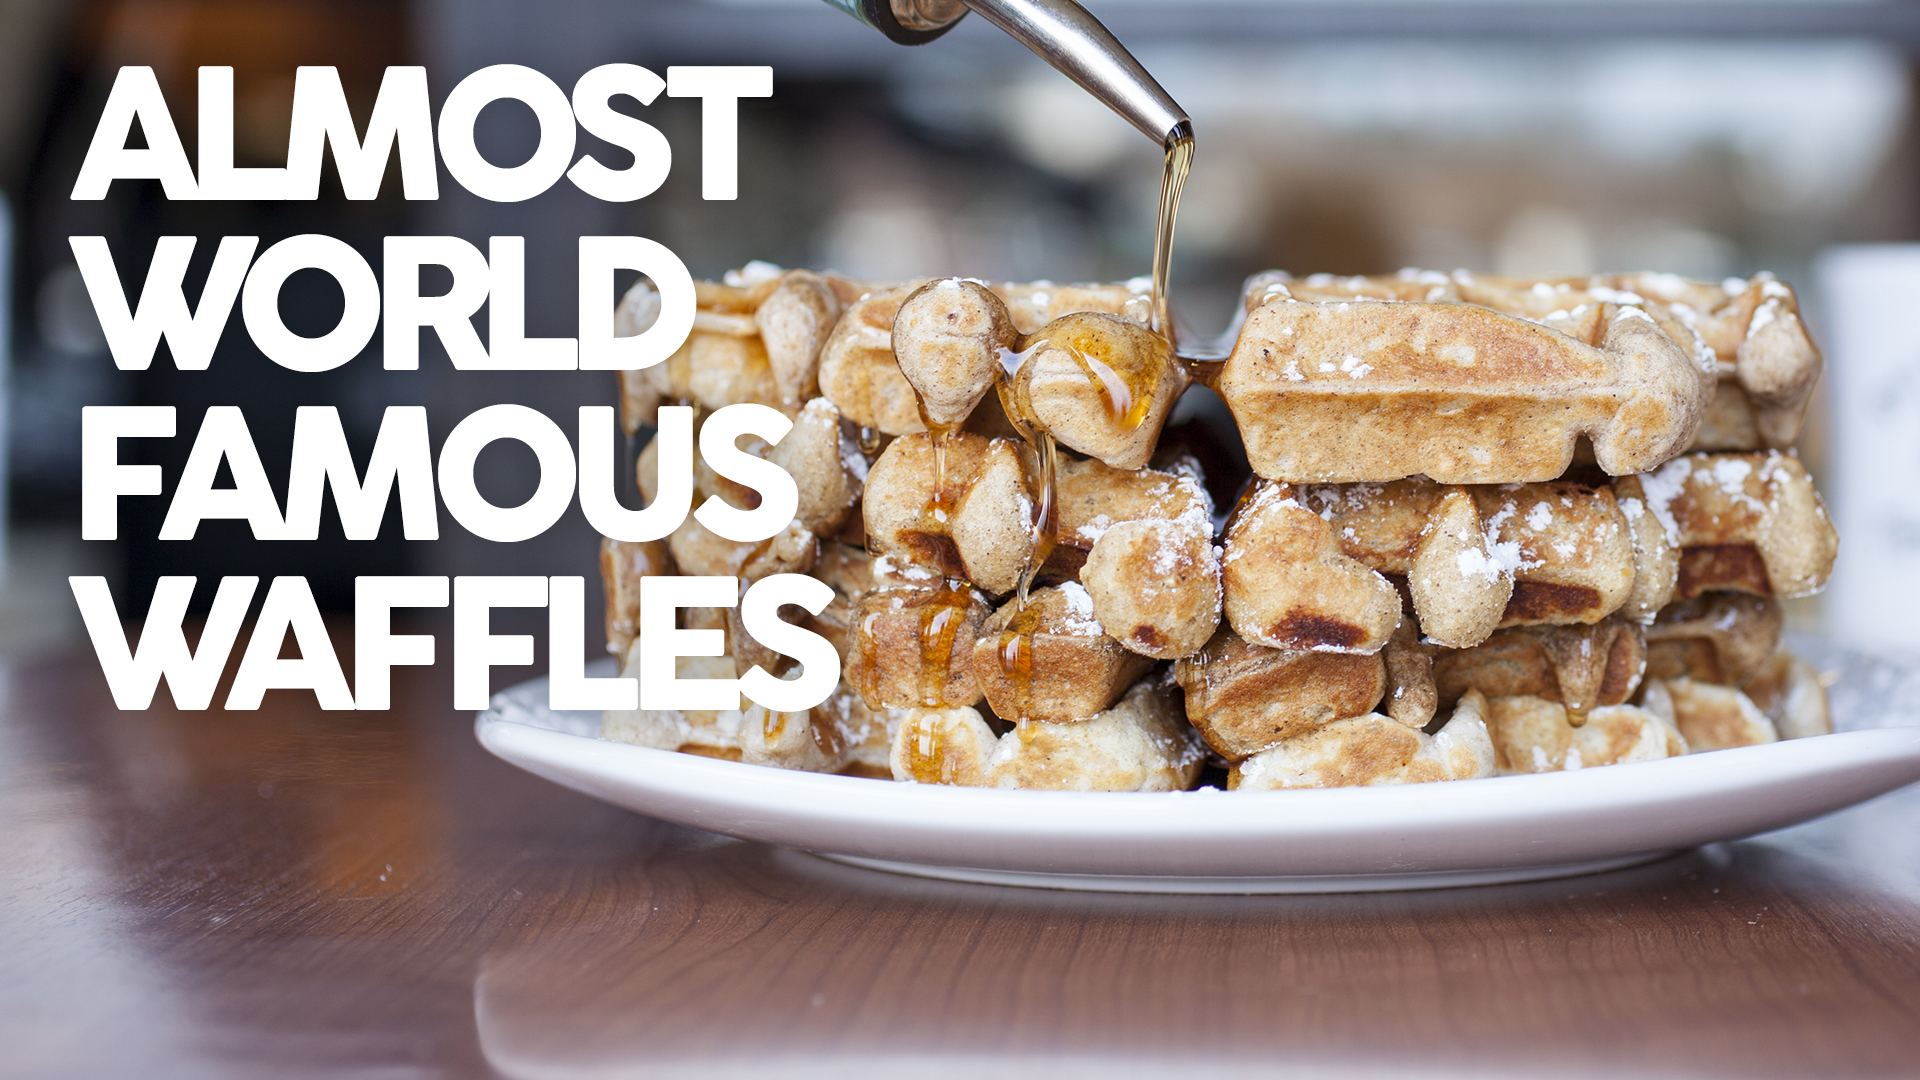 Almost World Famous Waffles